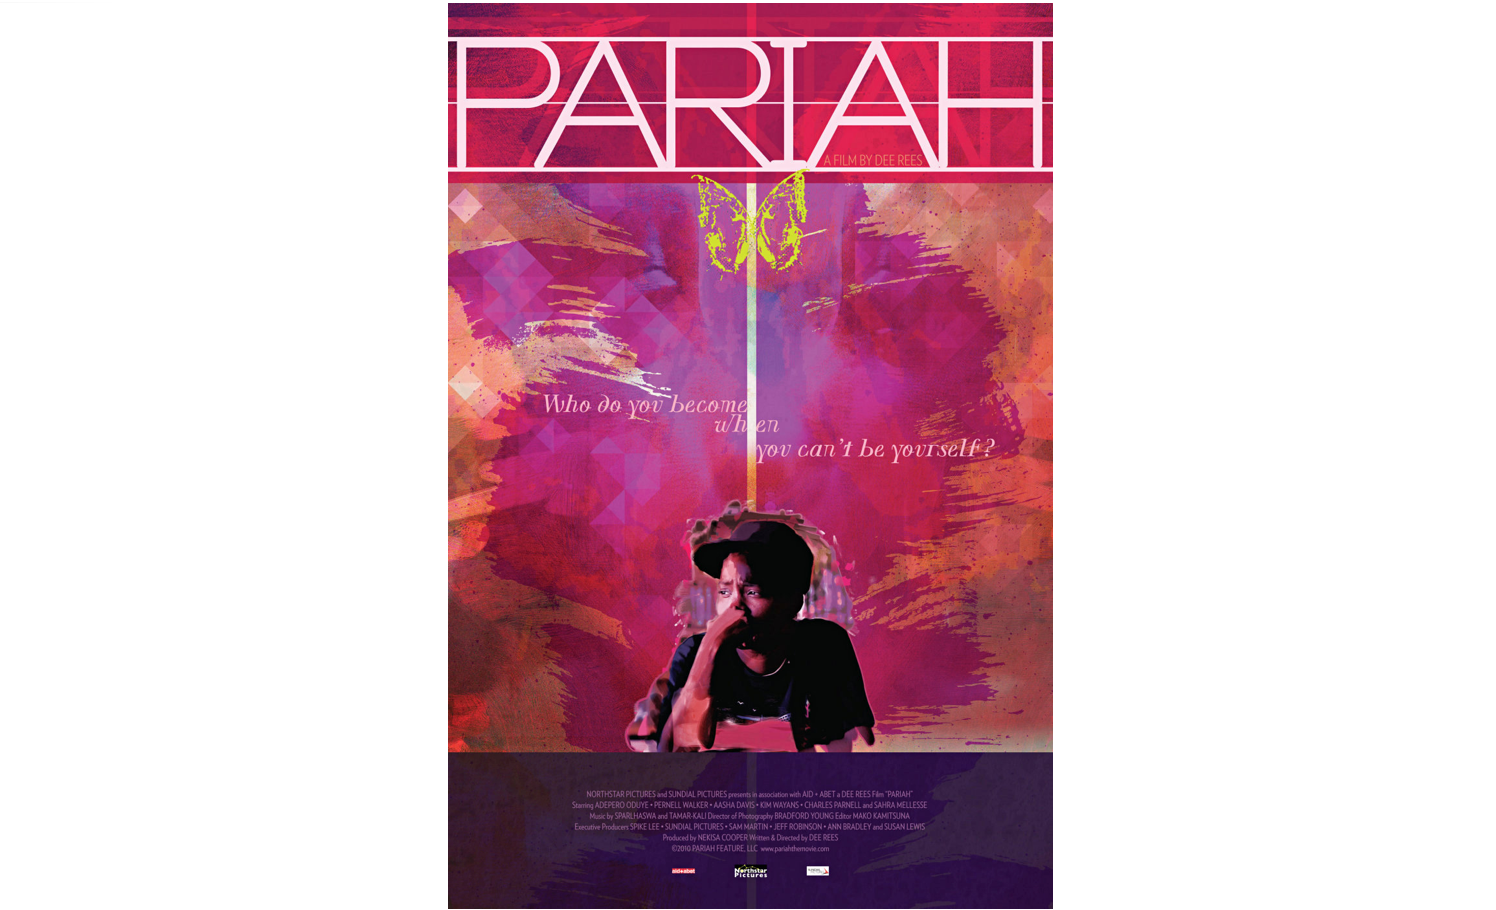 Pariah Slider Image